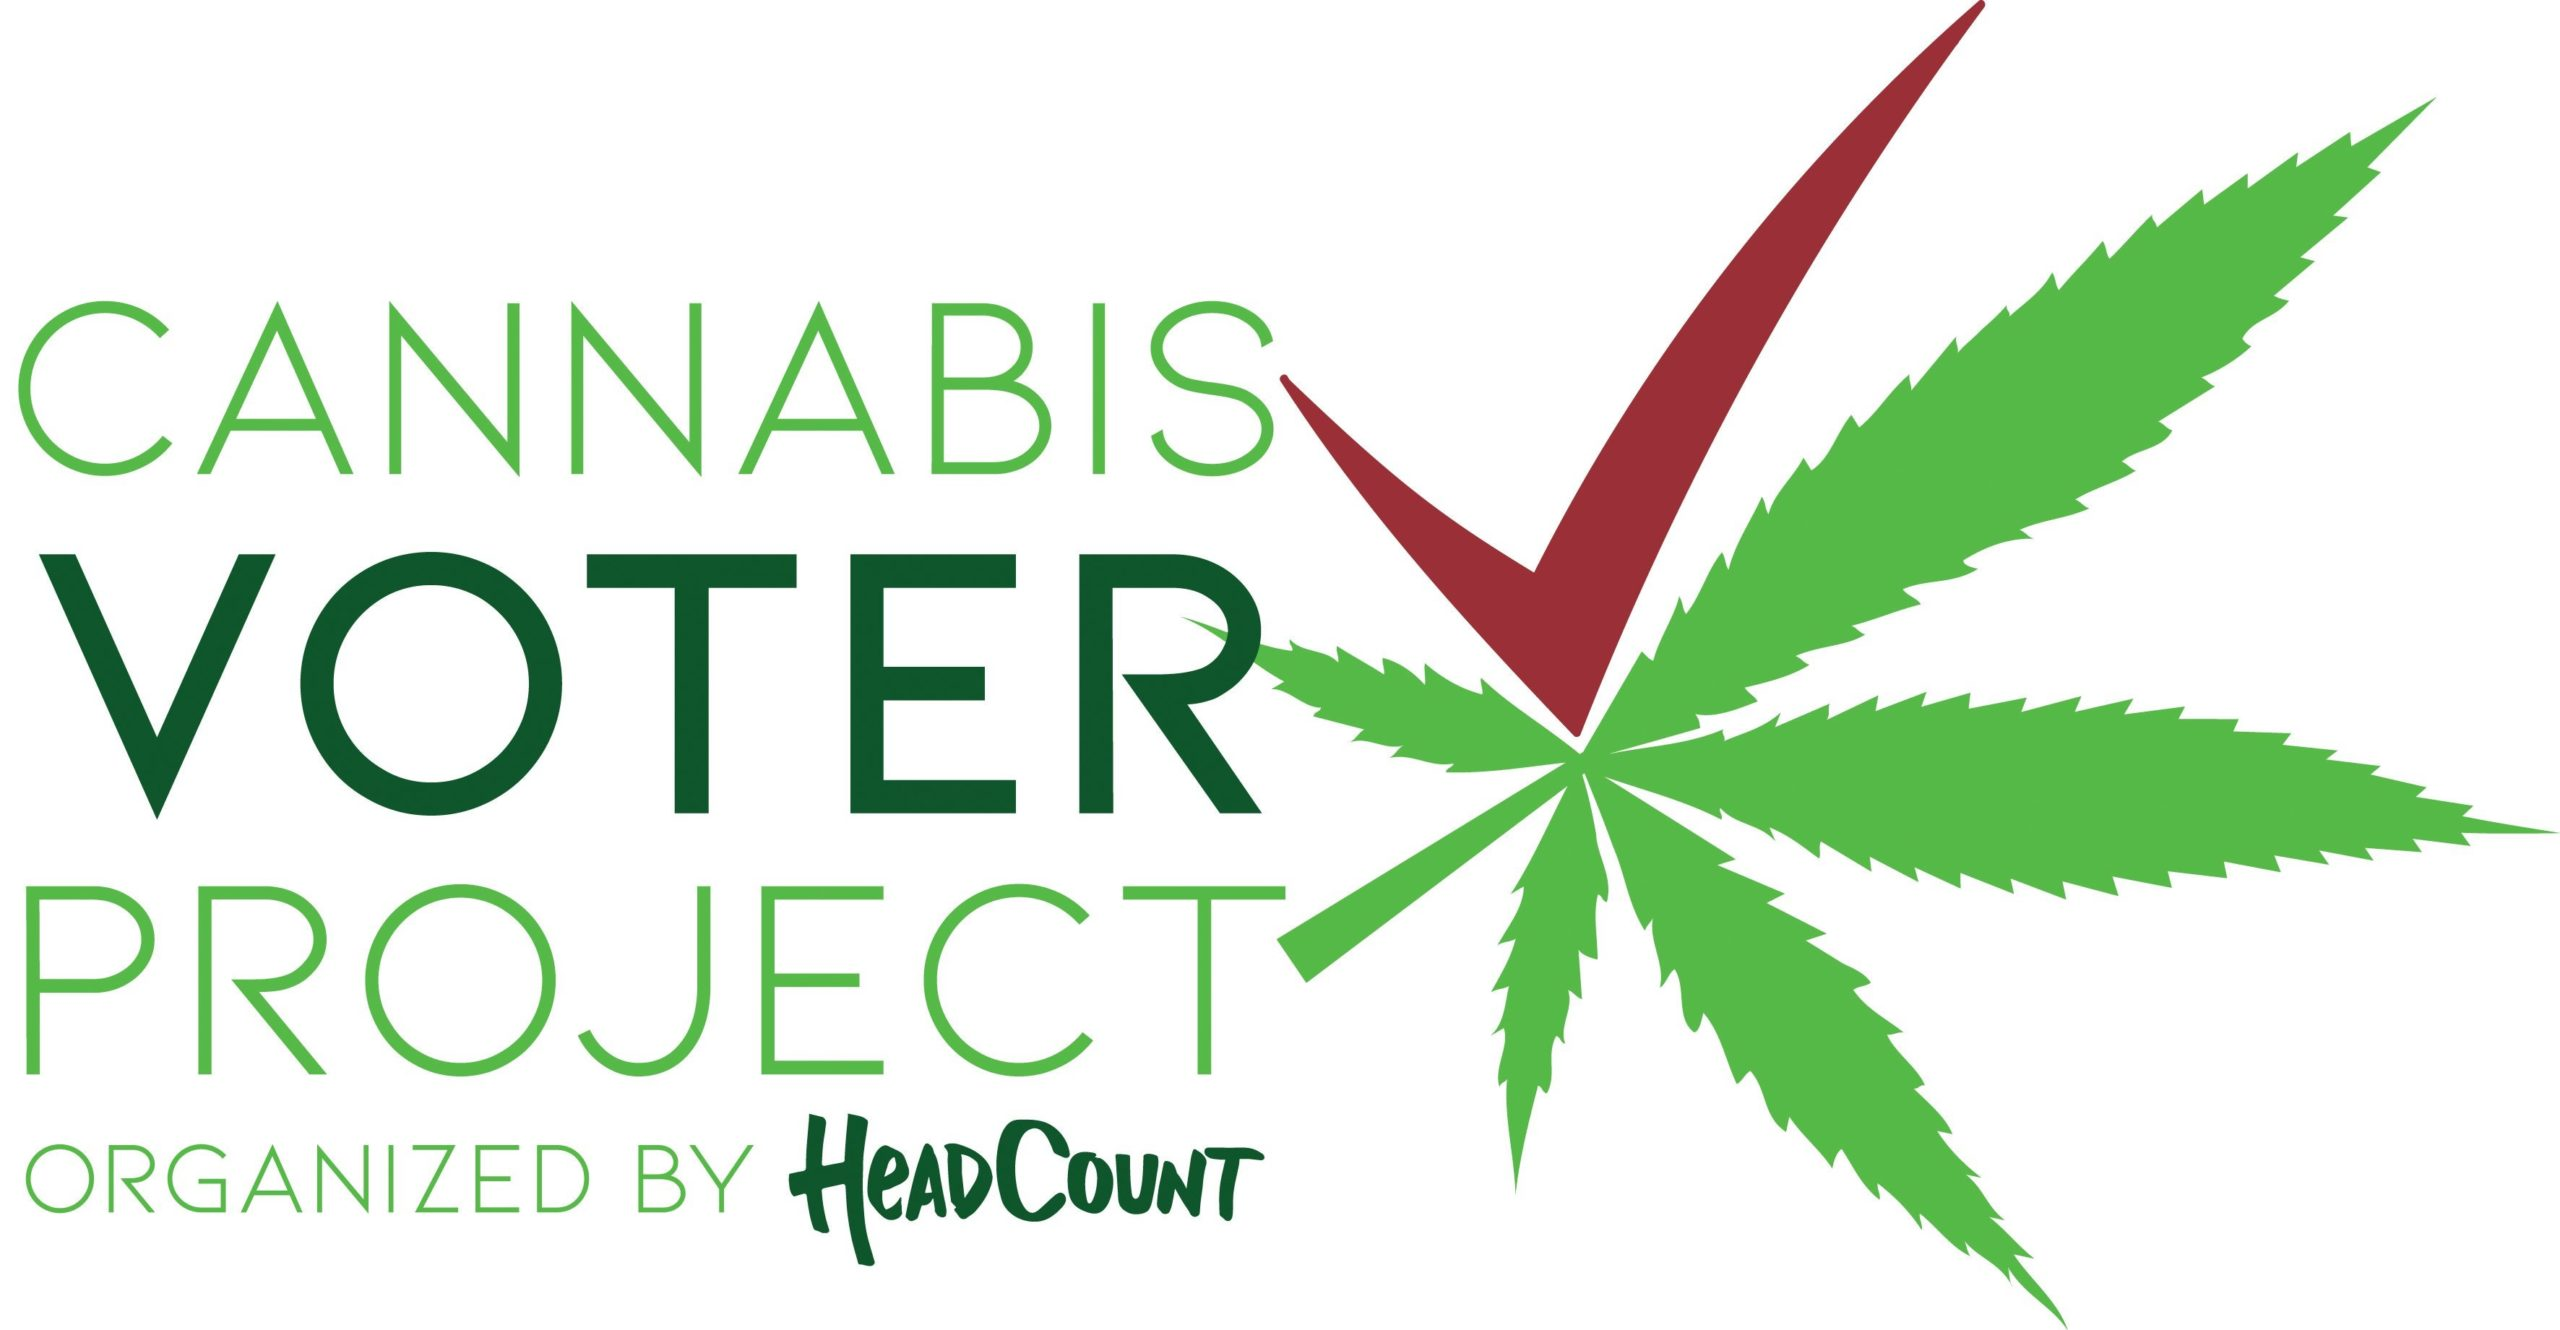 Want marijuana legalized where you live? Register to vote right now!!